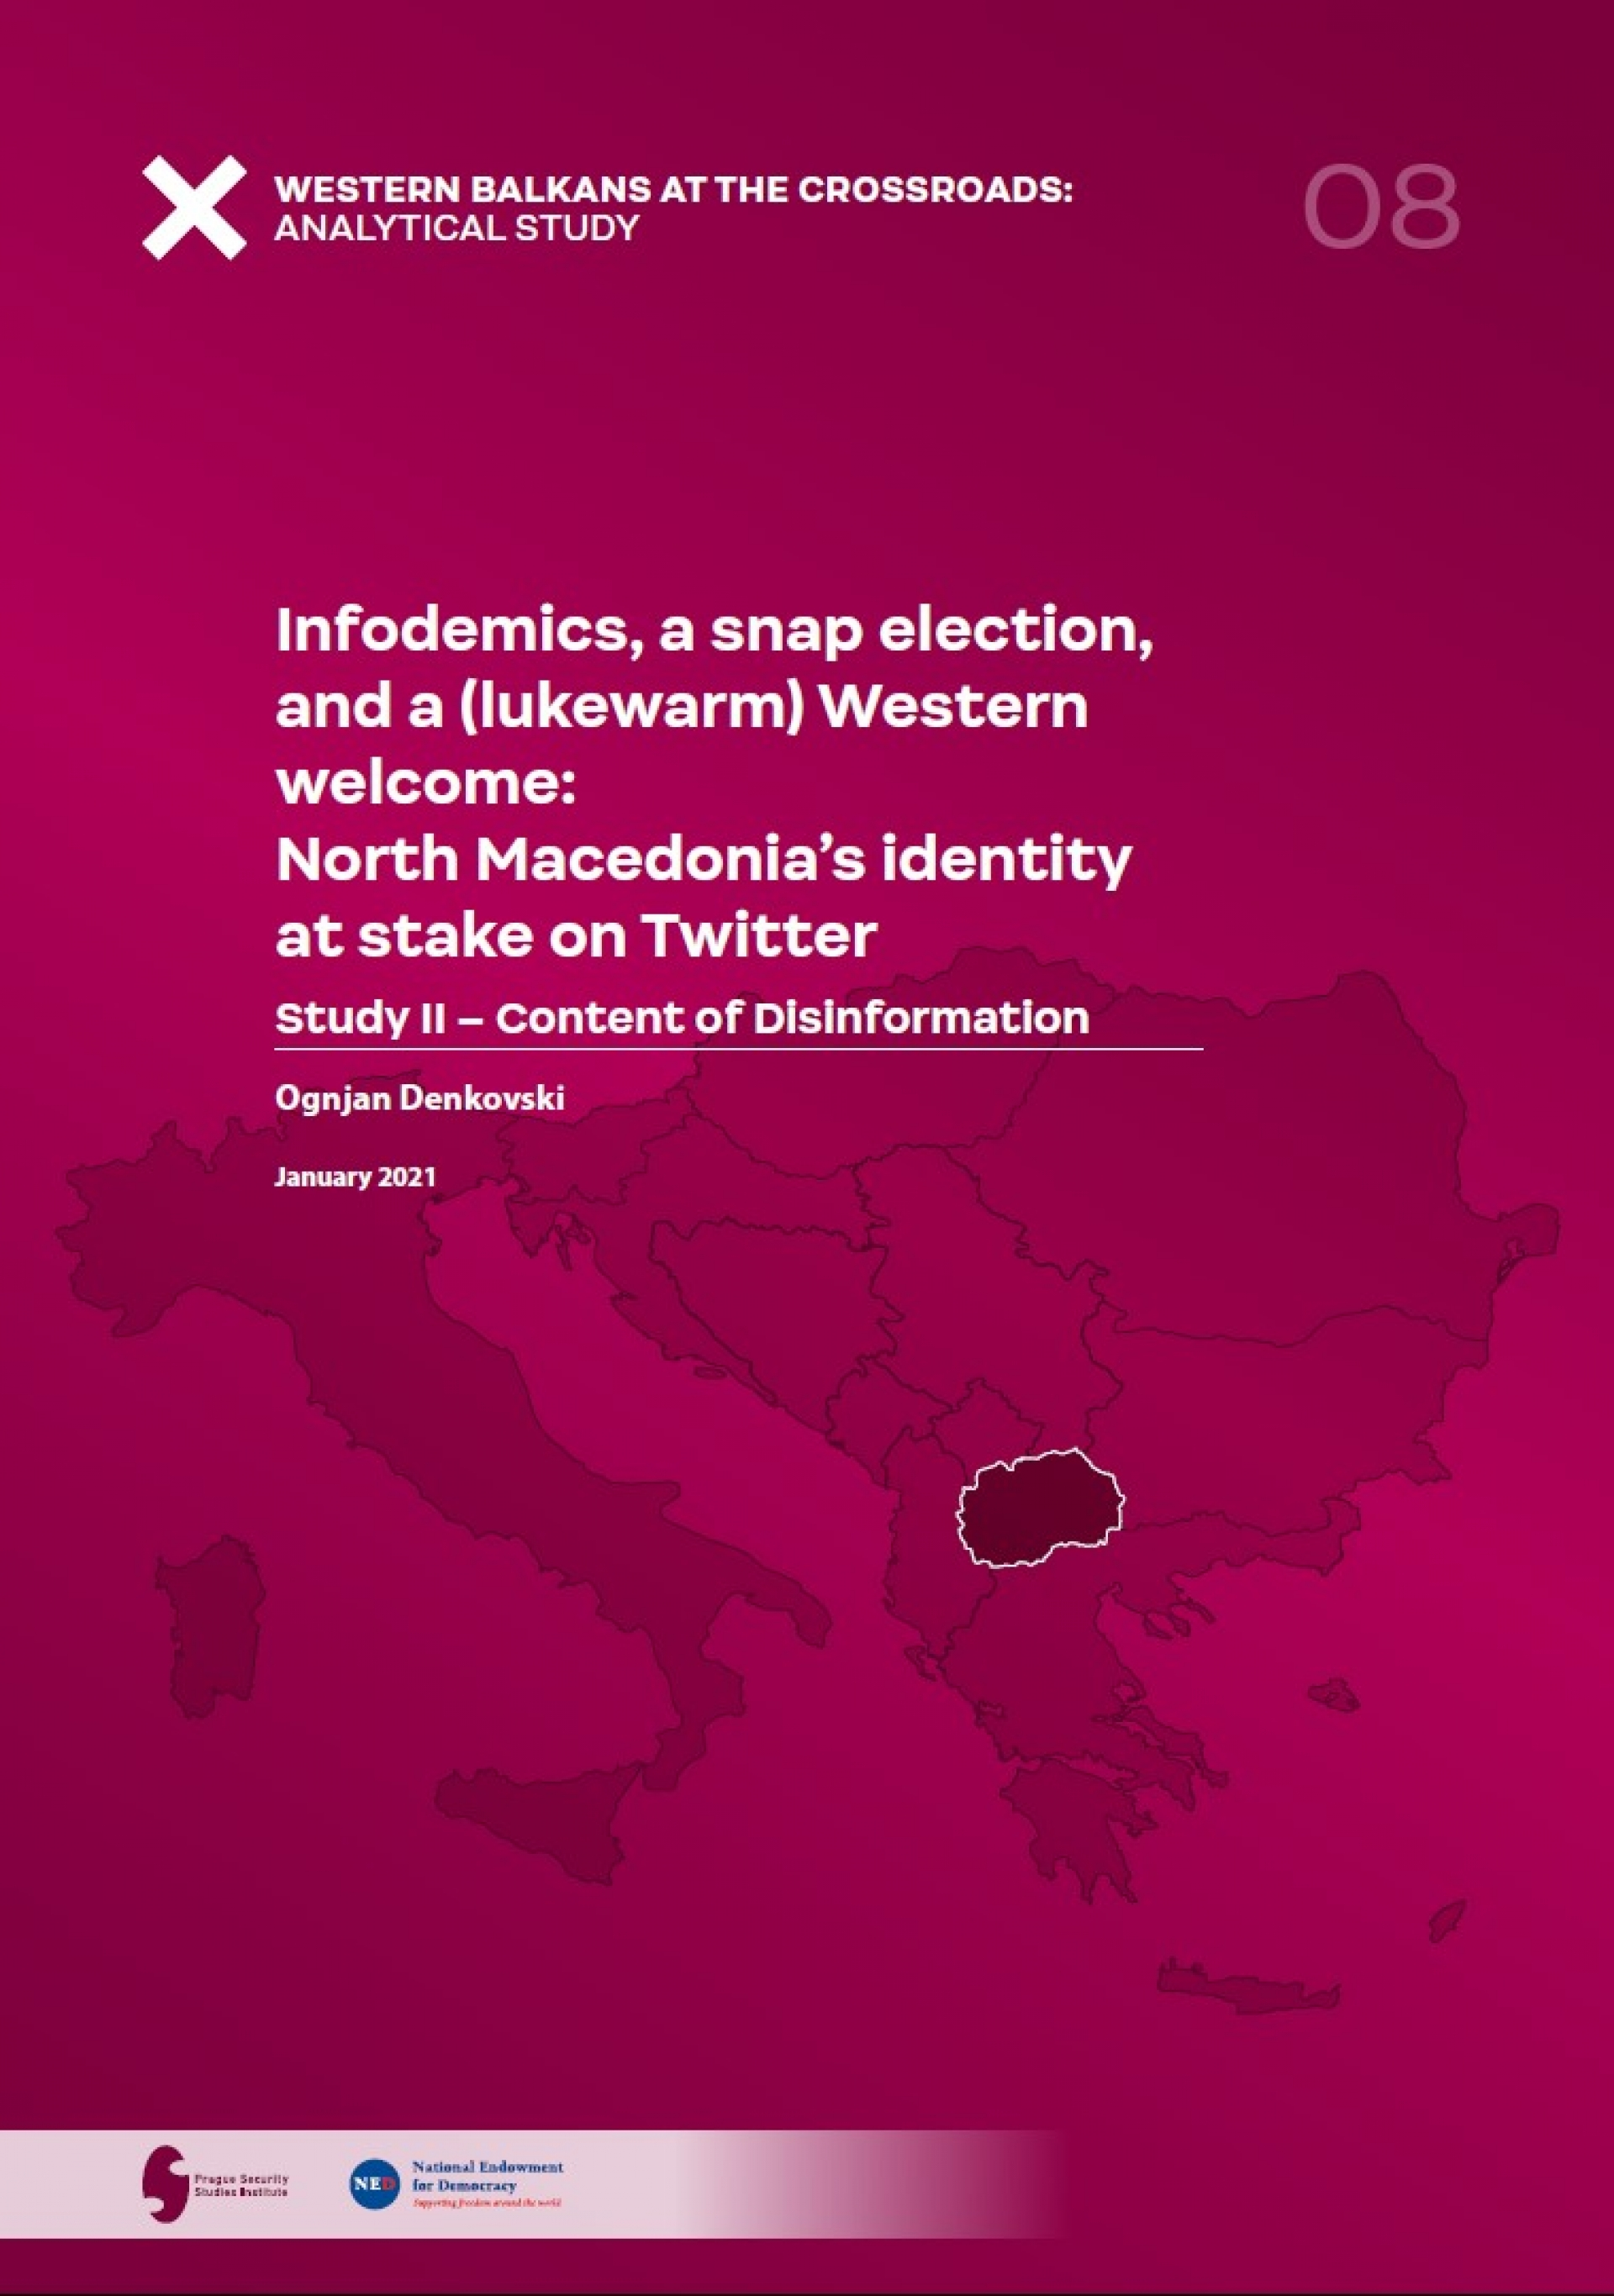 Infodemics,  a snap election, and a (lukewarm) Western welcome COVERPHOTO - study II